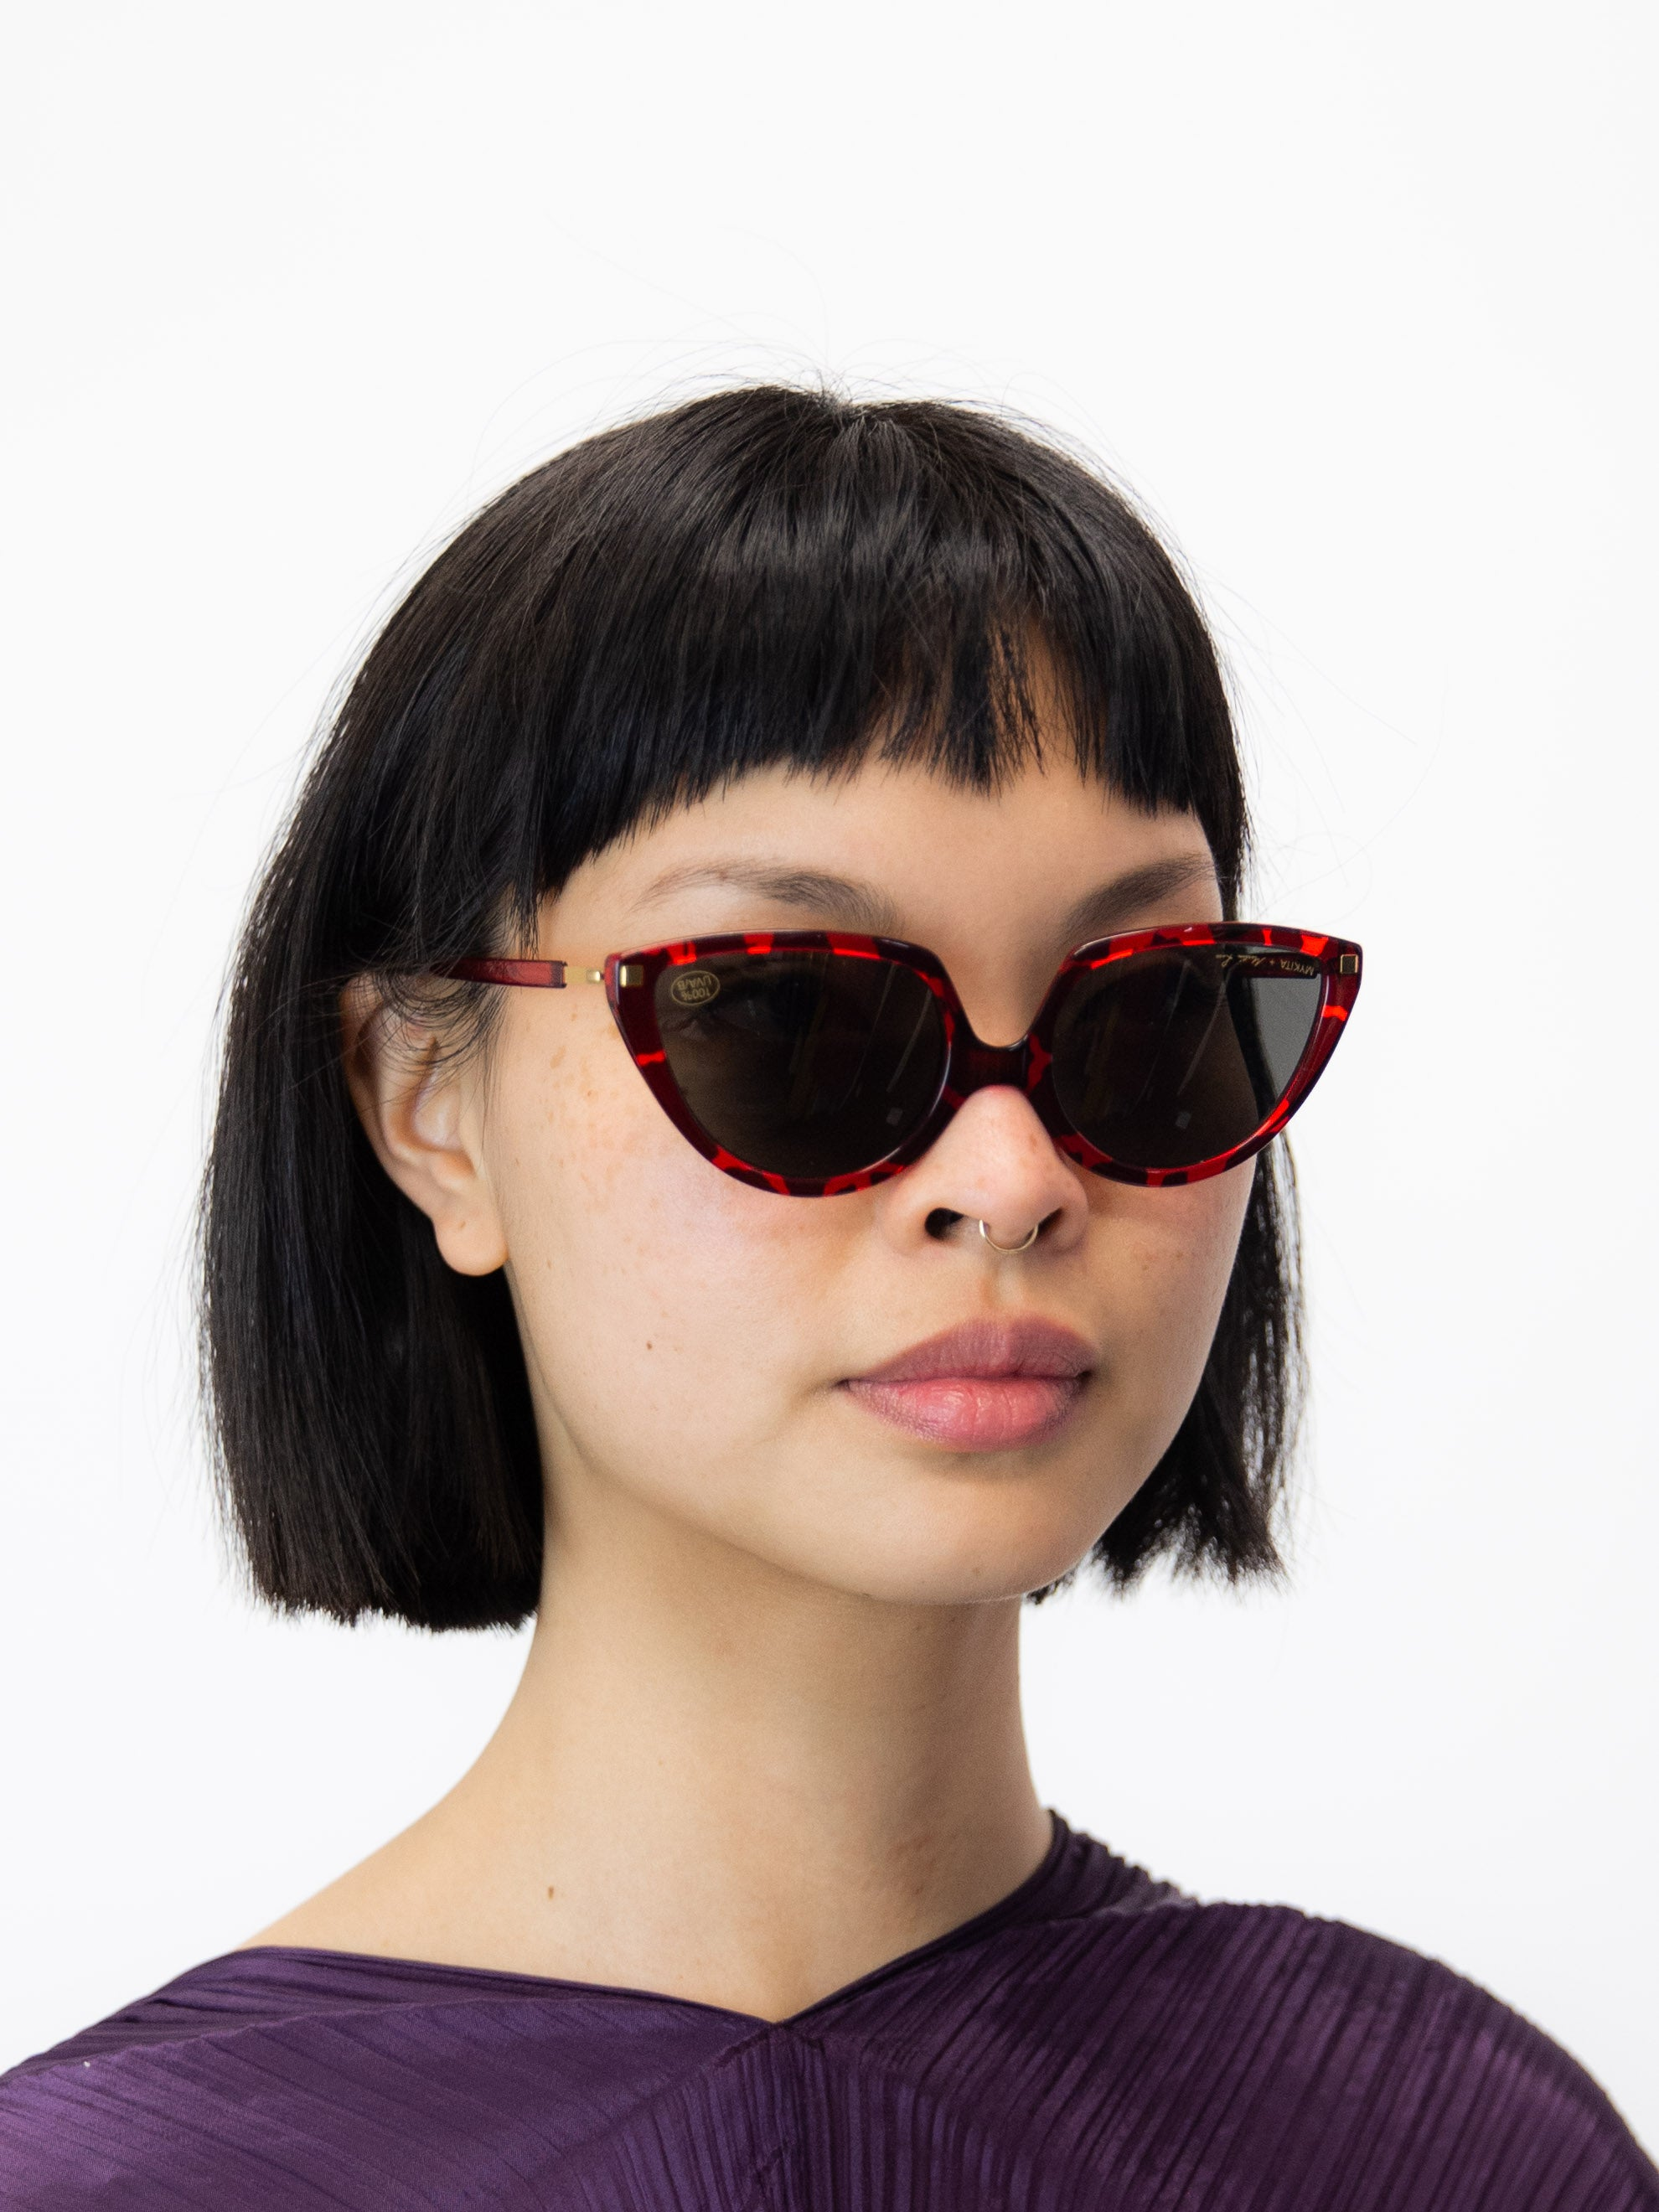 MYKITA + Martine Rose SOS Sunglasses - Red Giraffe